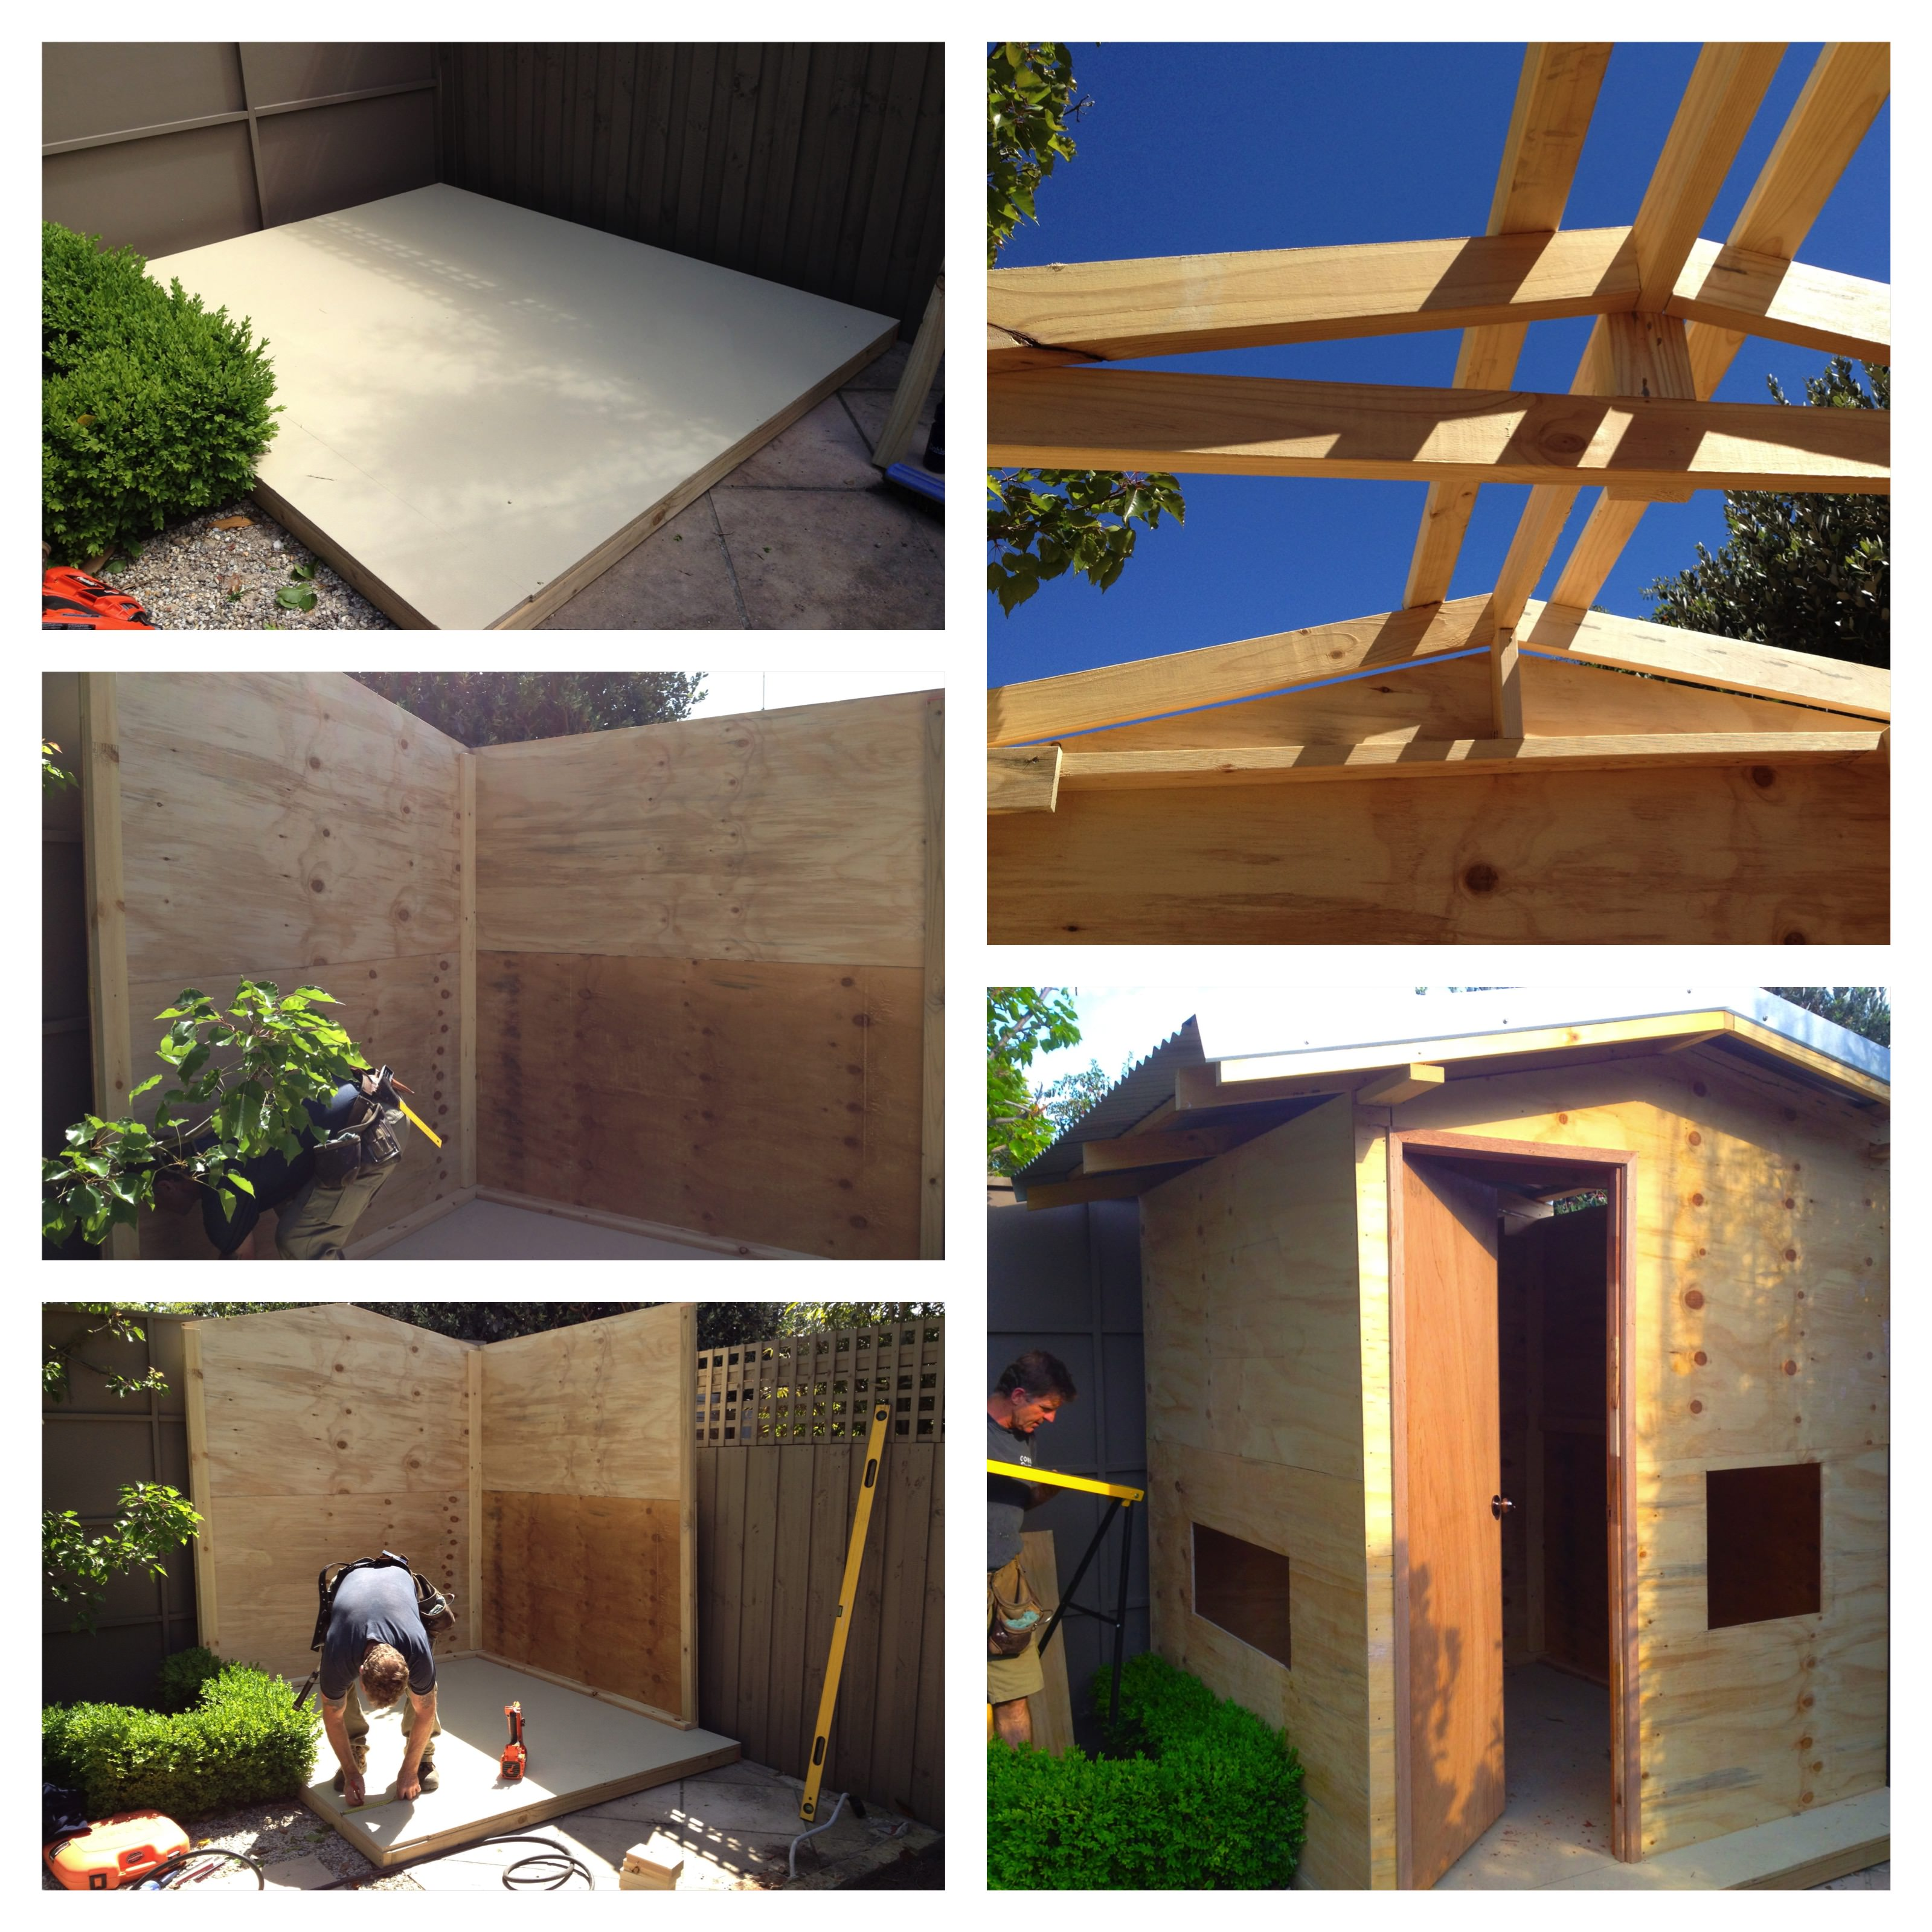 Shed or Cubby house